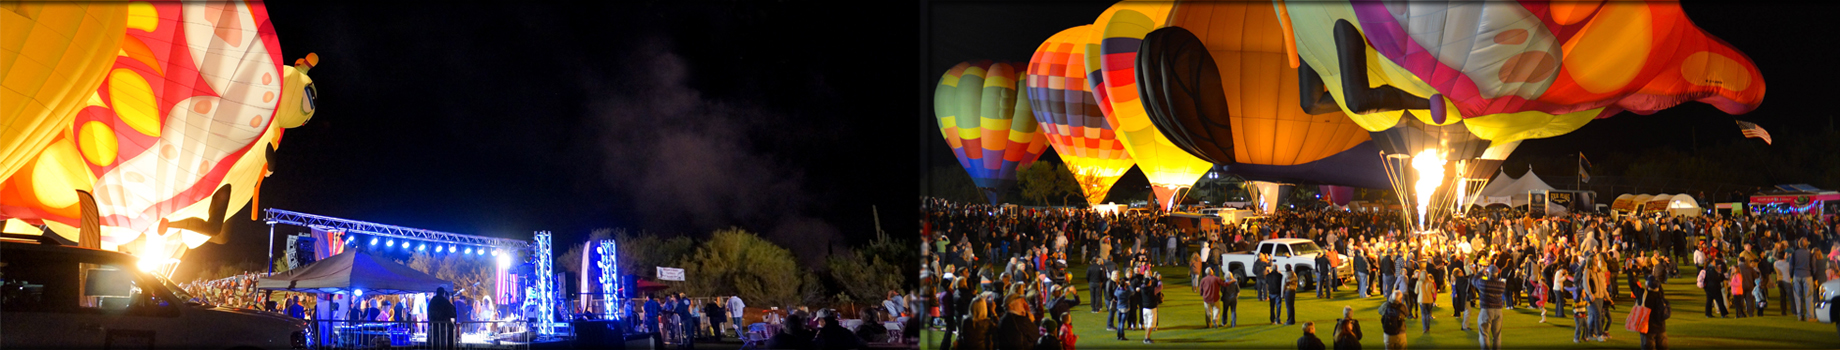 7th Annual Cave Creek Balloon Festival